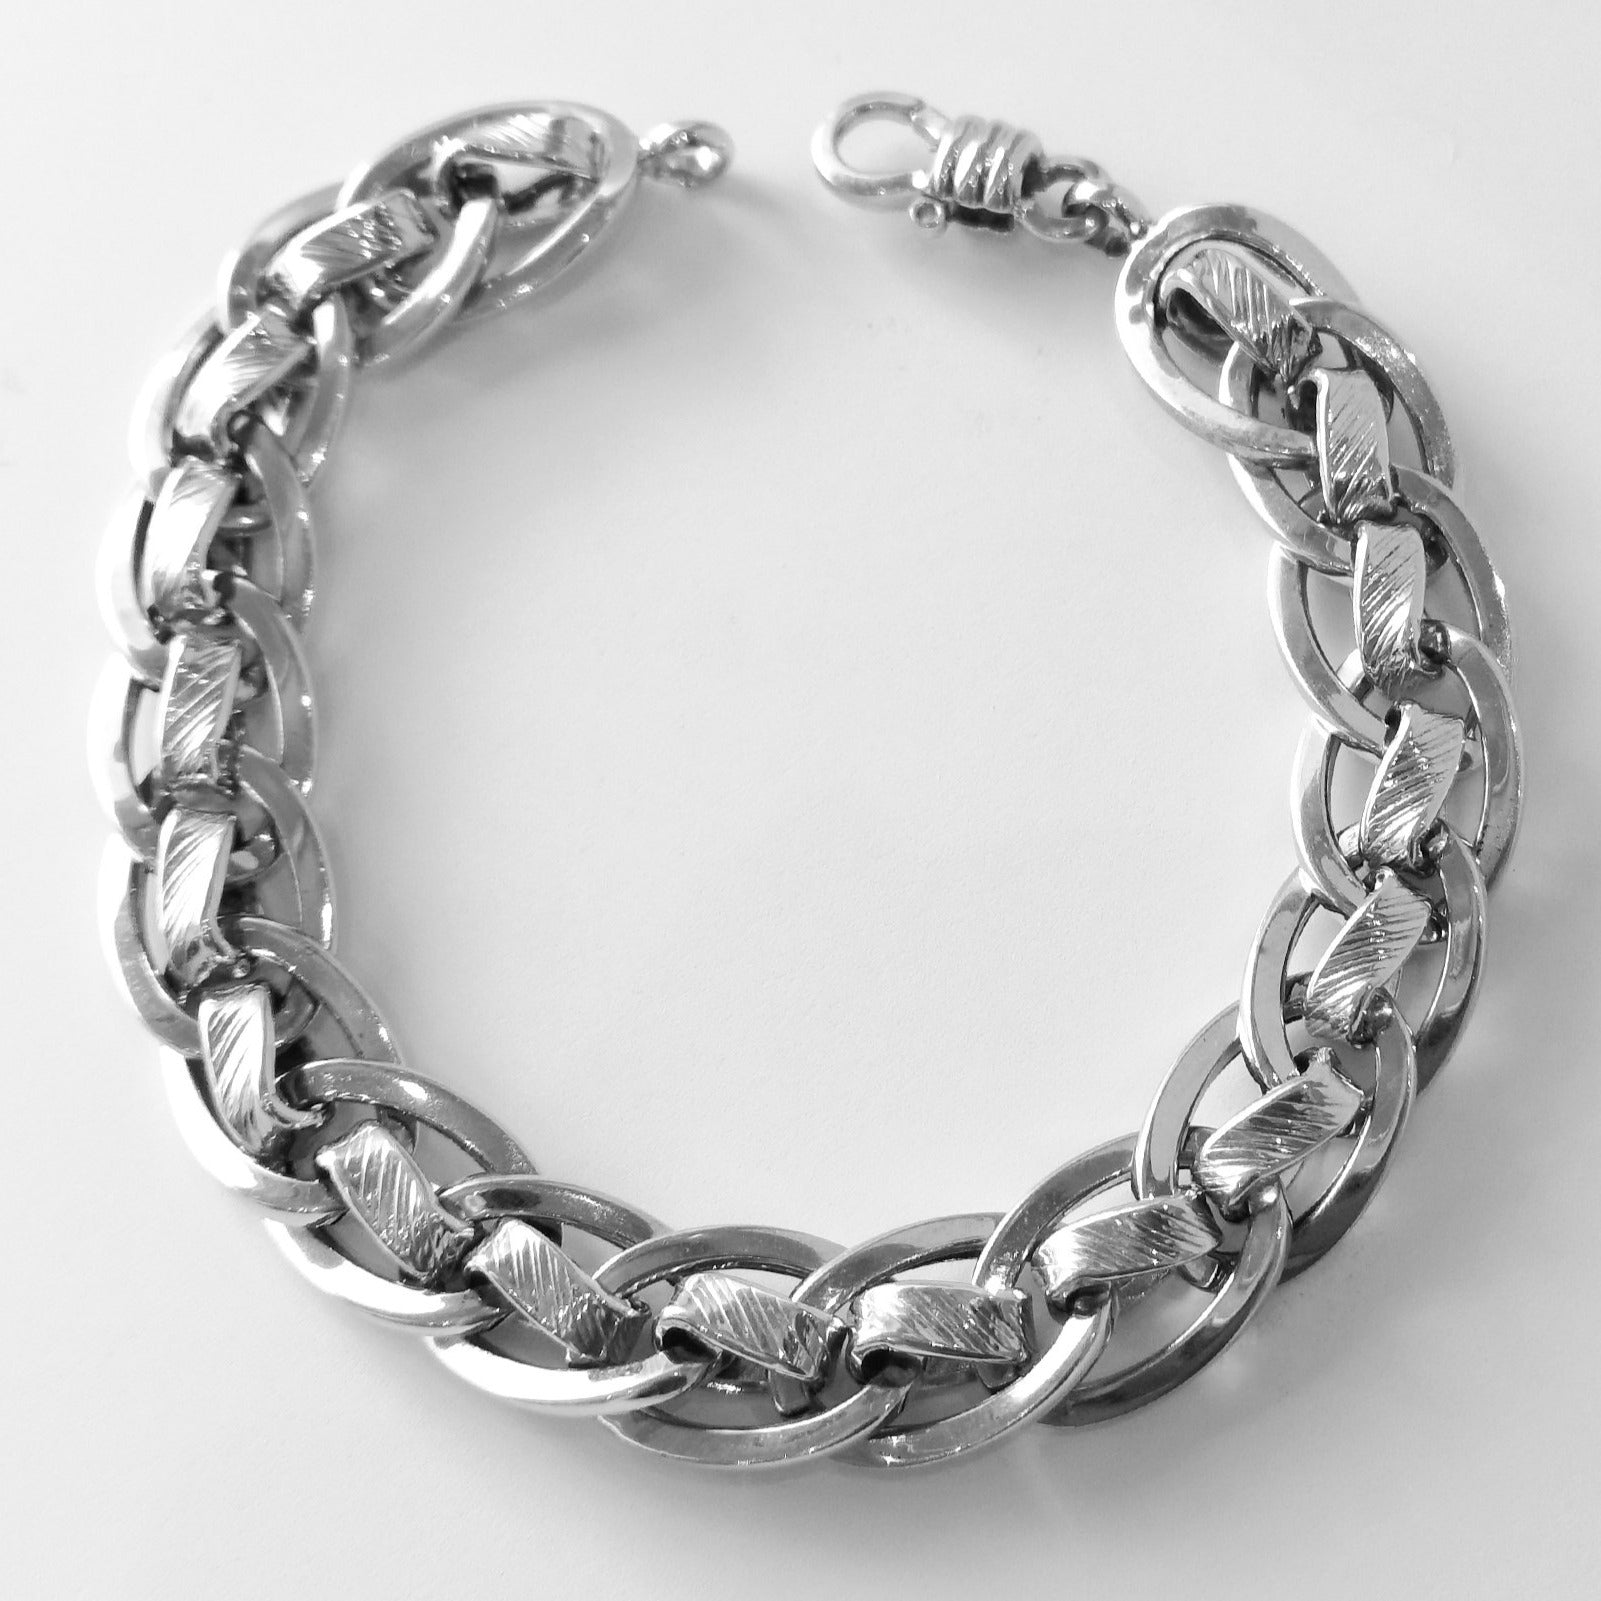 Gents Bracelet 18ct White Gold (18.6g) GBR-4287